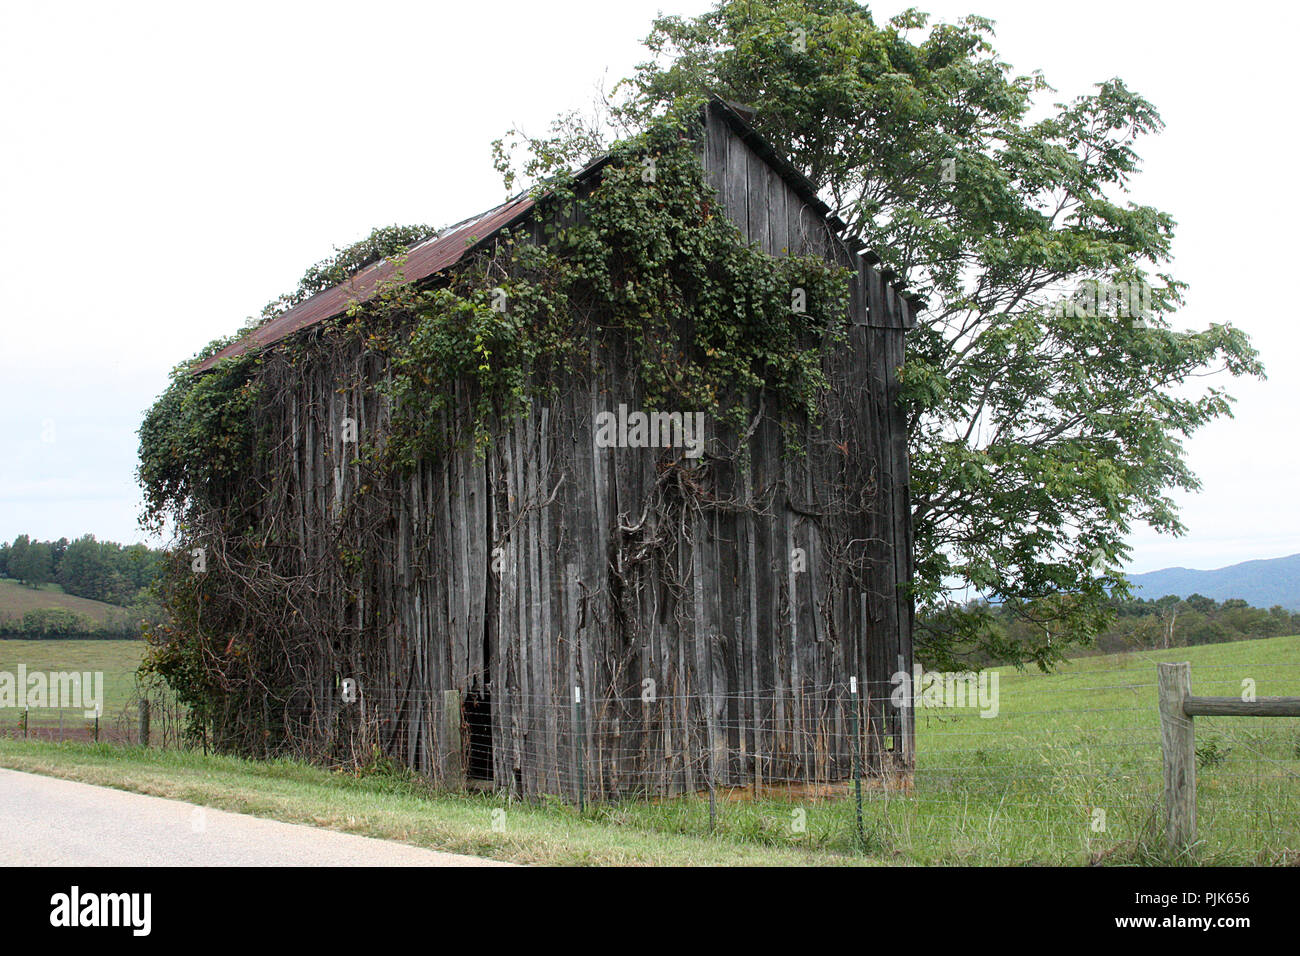 Abandoned shed covered by vines - Stock Image